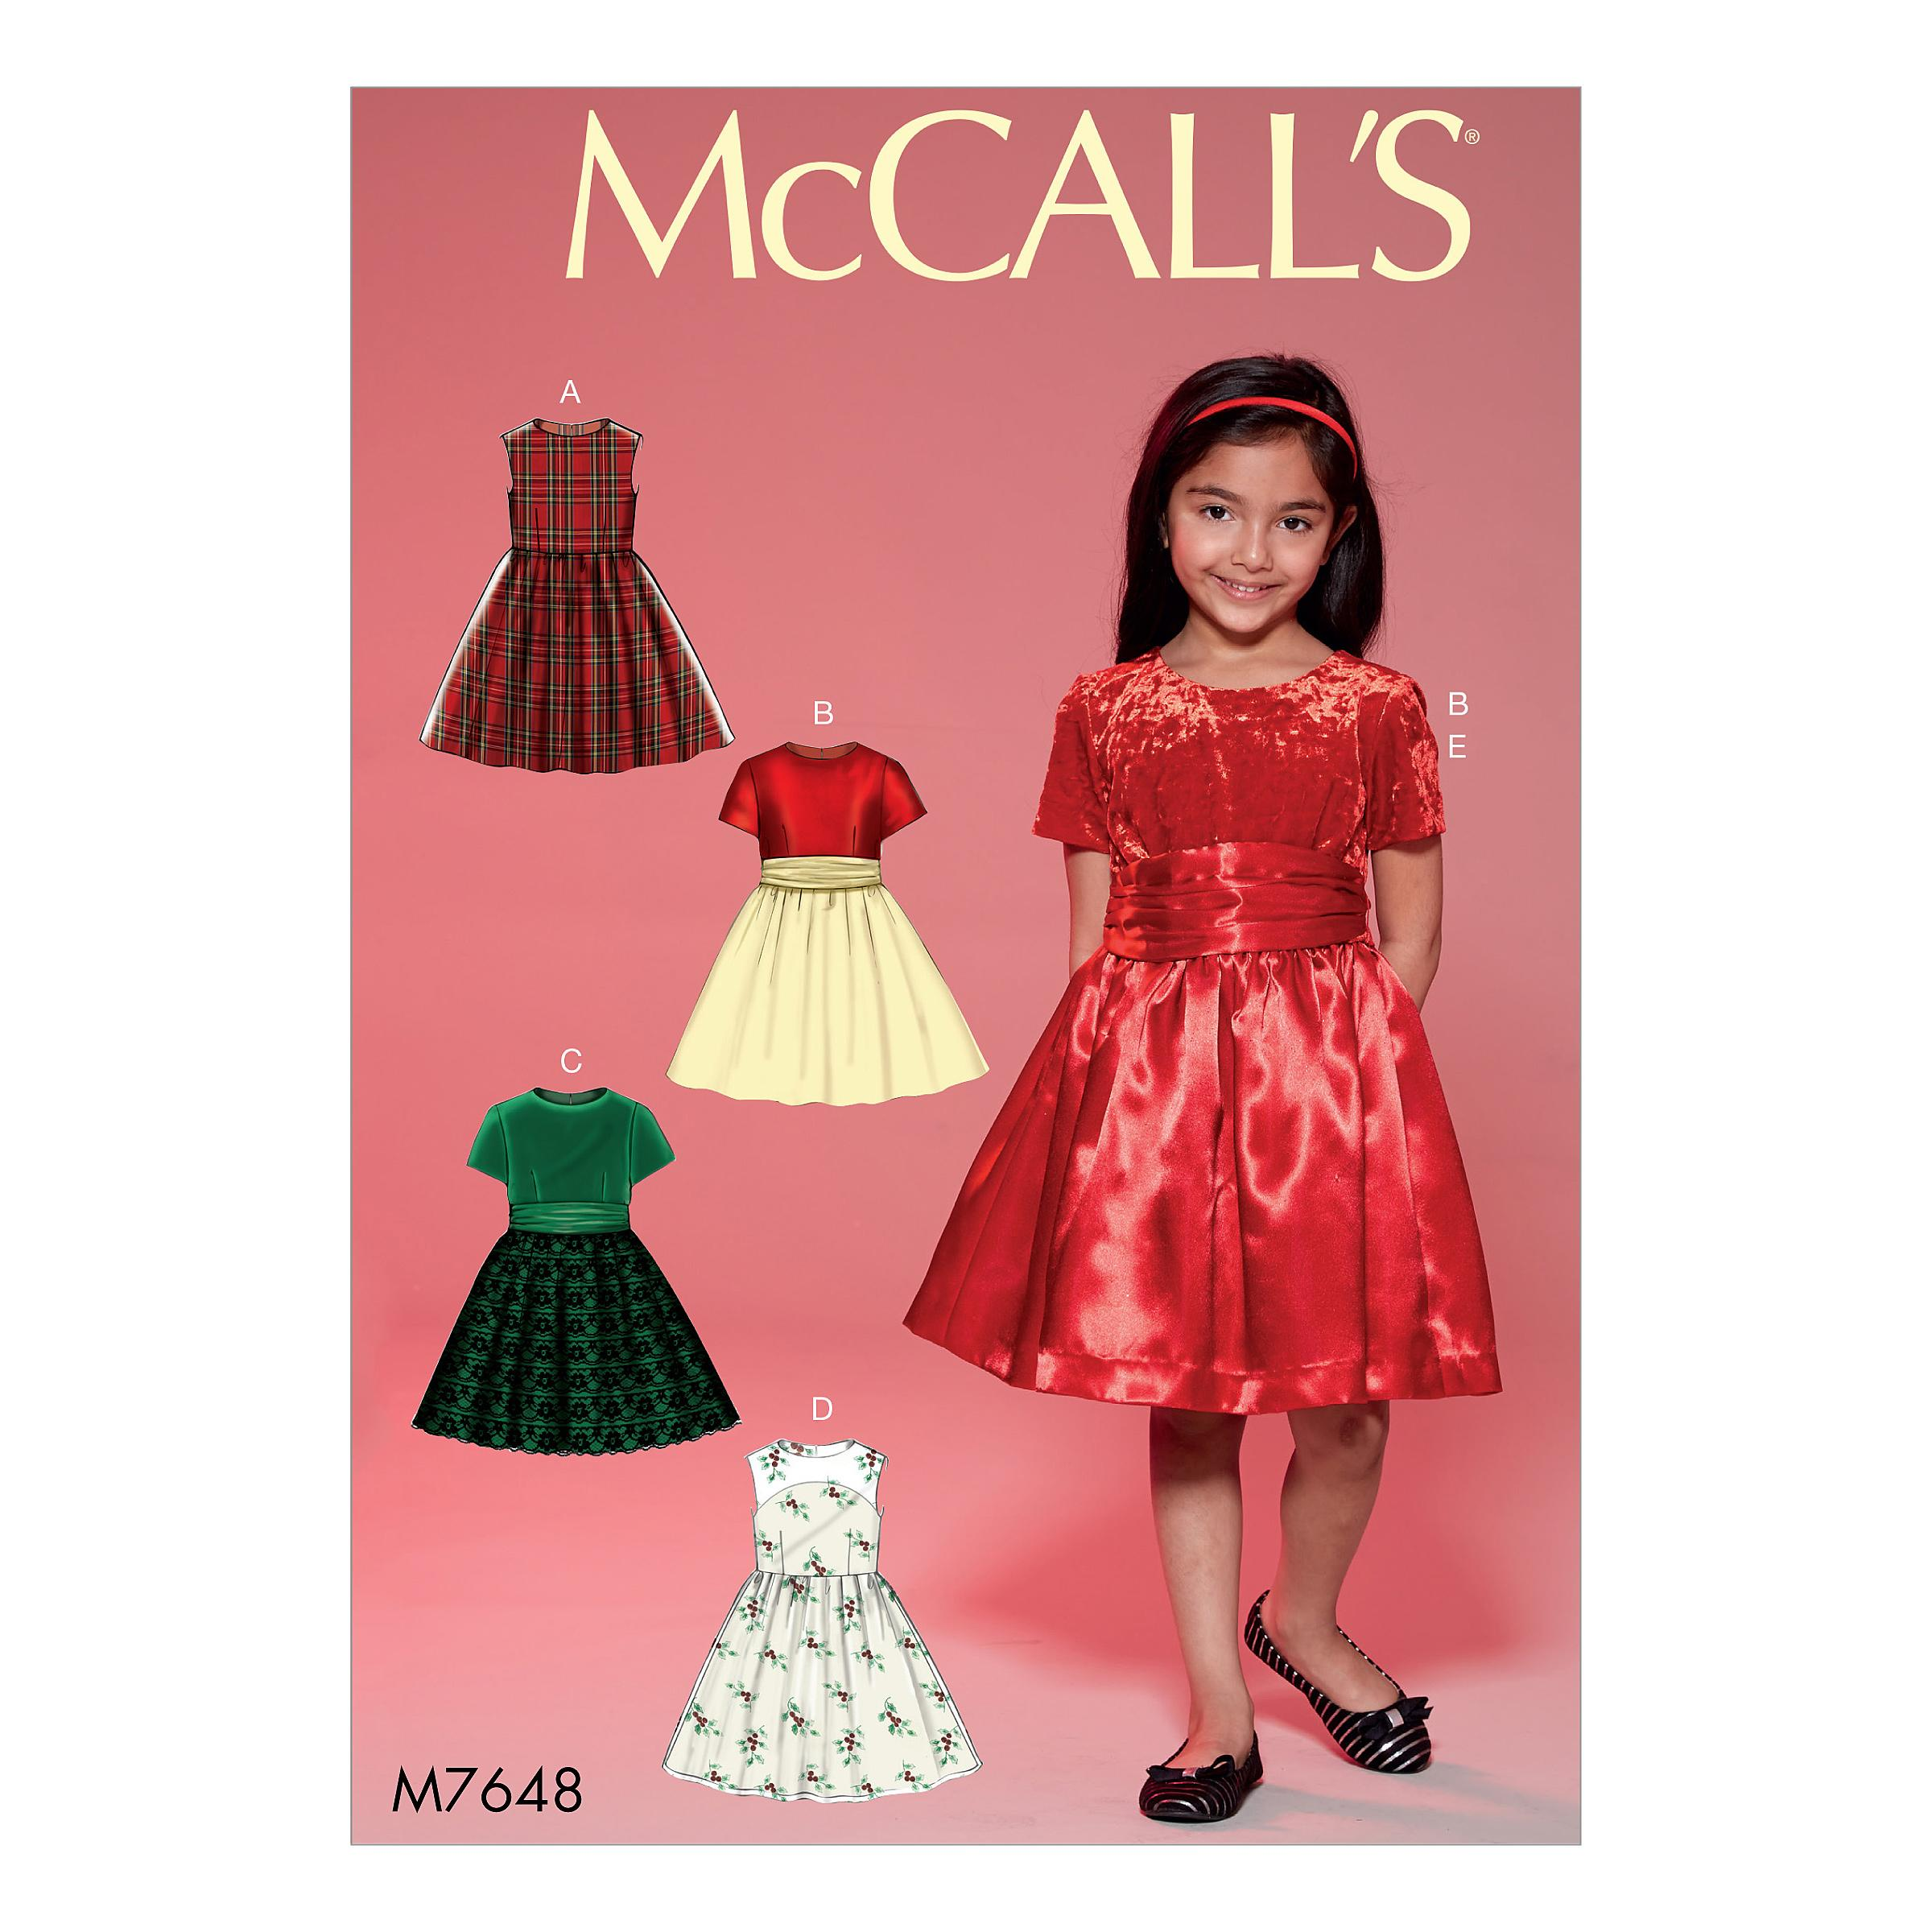 McCalls M7648 Kids Girls & Boys, Kids Children